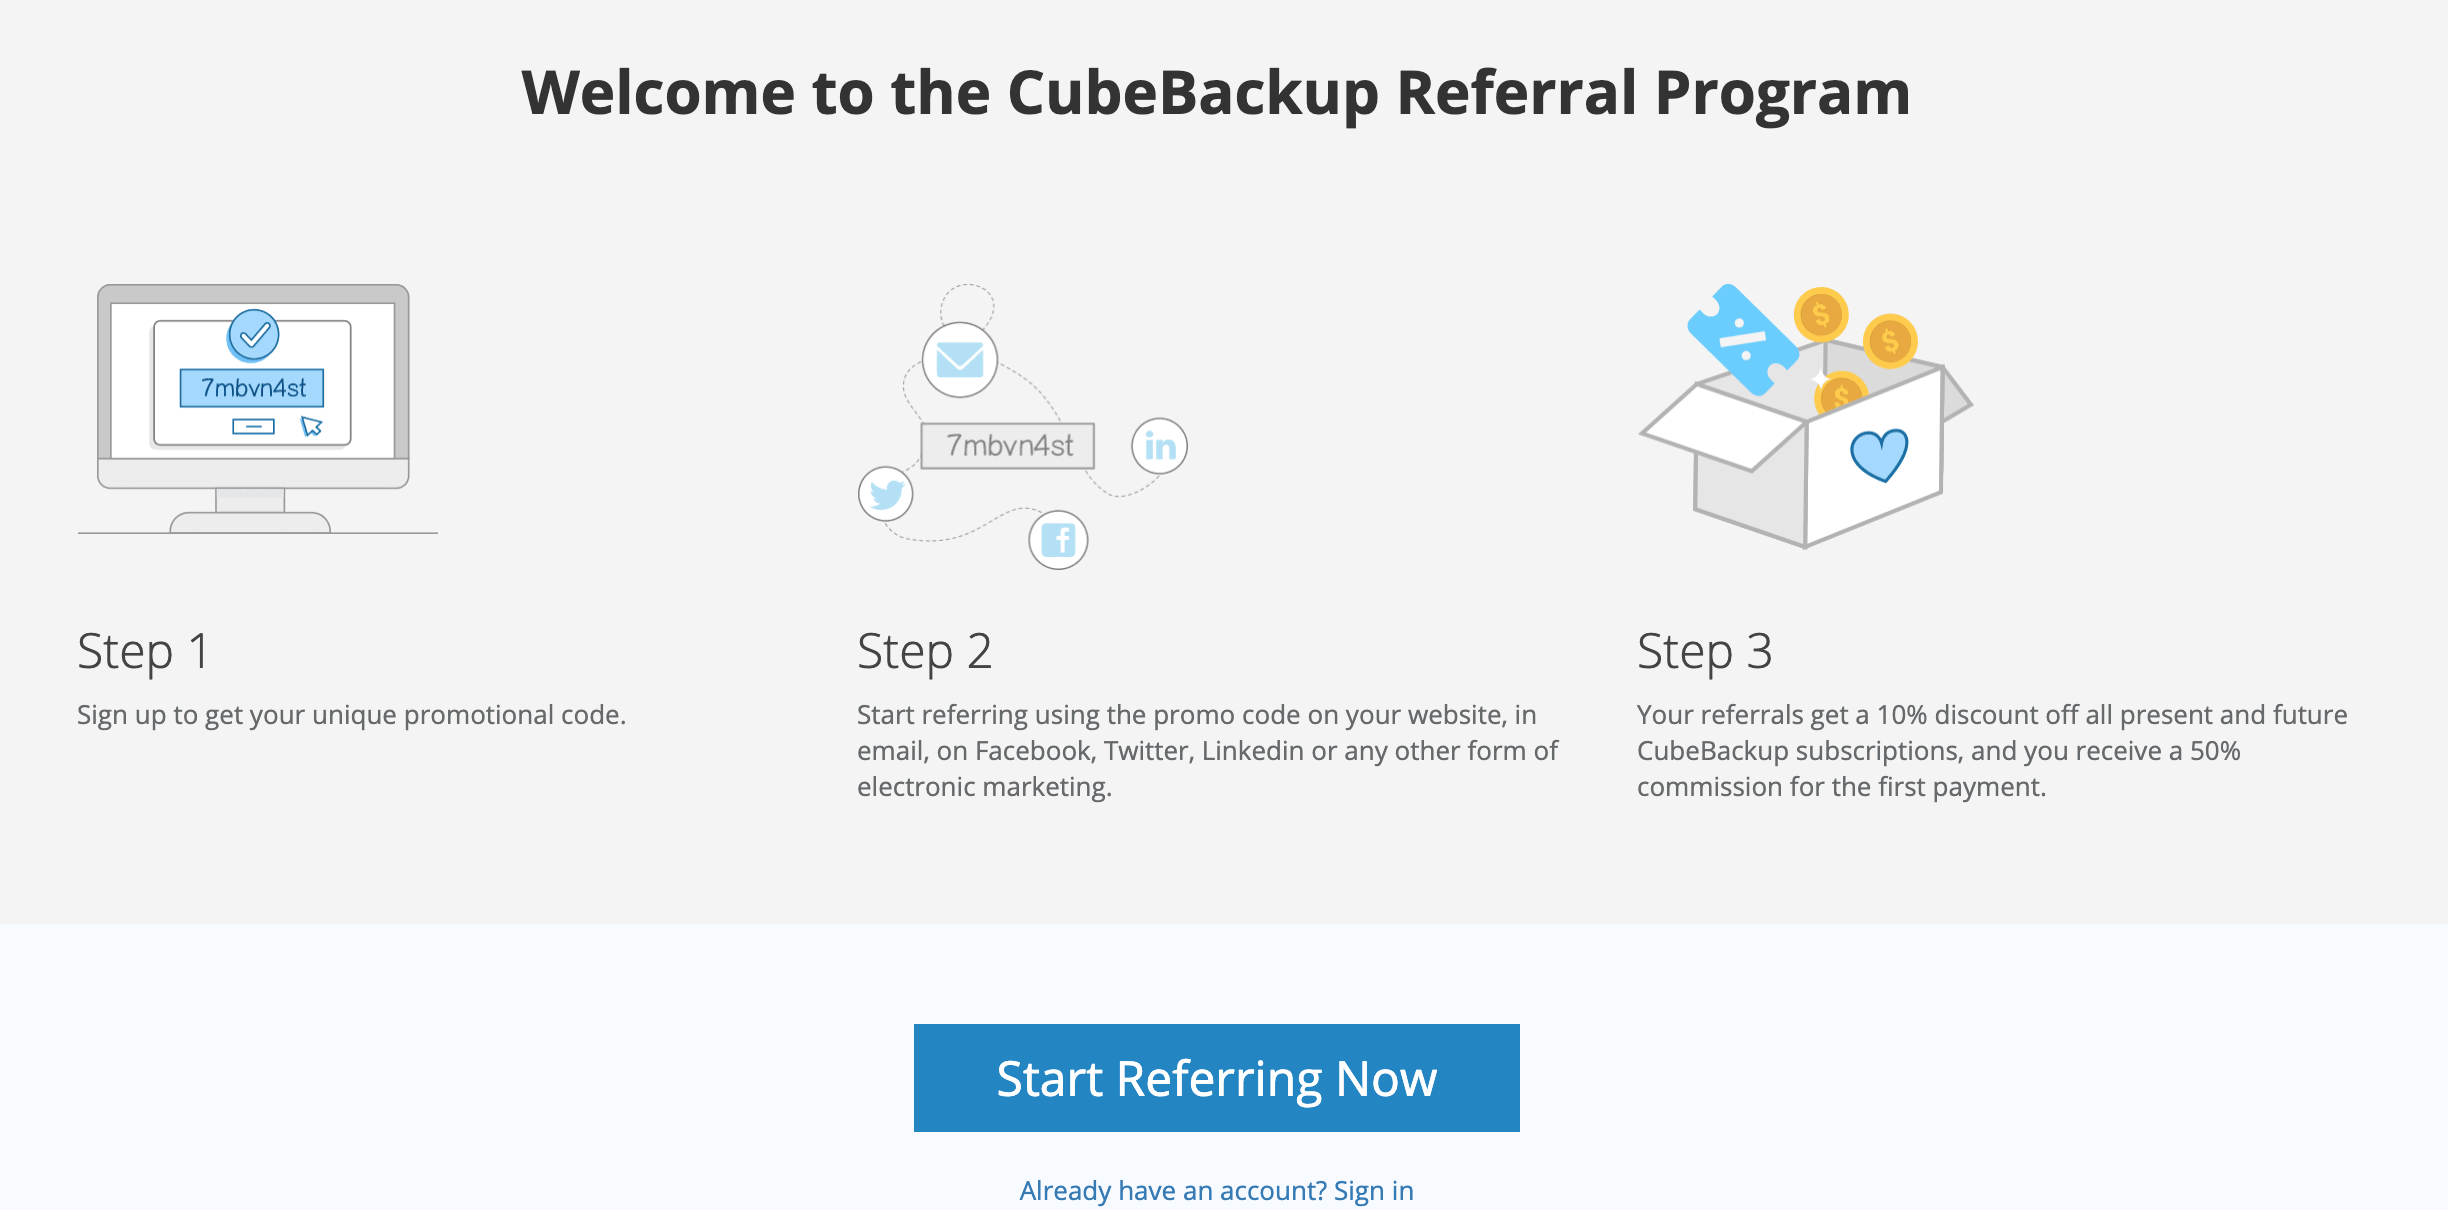 CubeBackup referral